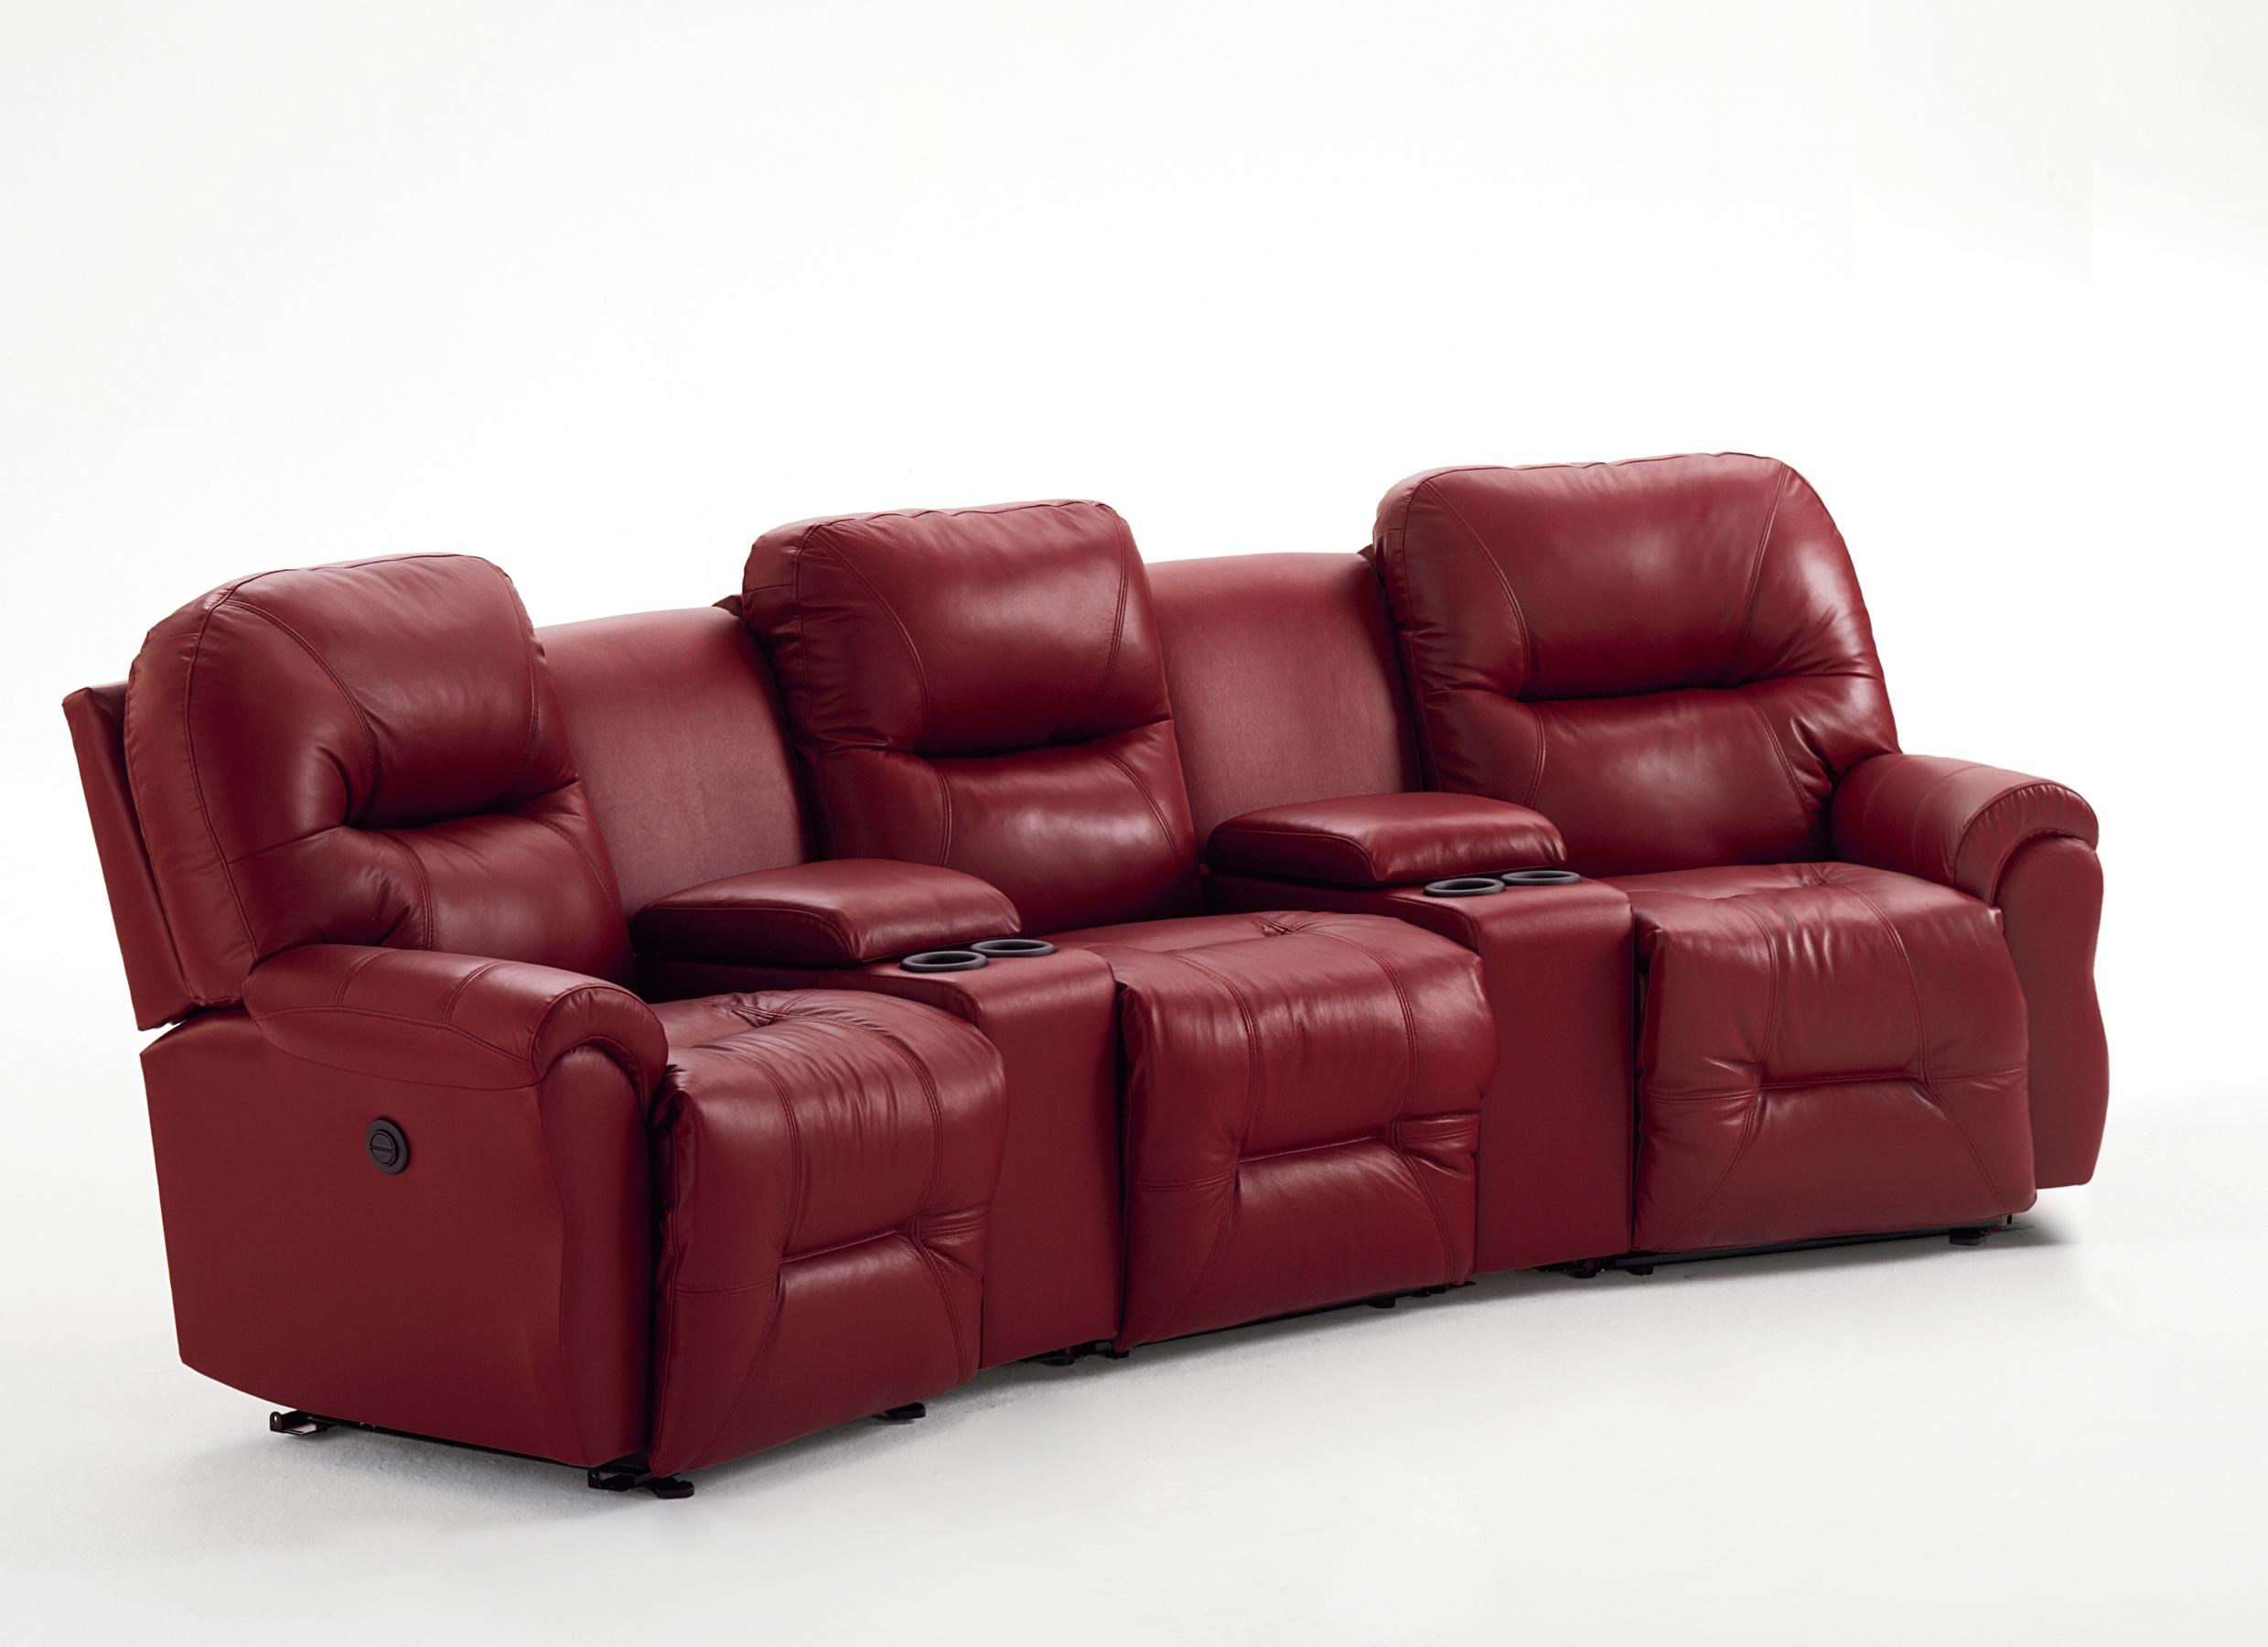 Best Home Furnishings Bodie 3 Seater Power Reclining Home Theater Group